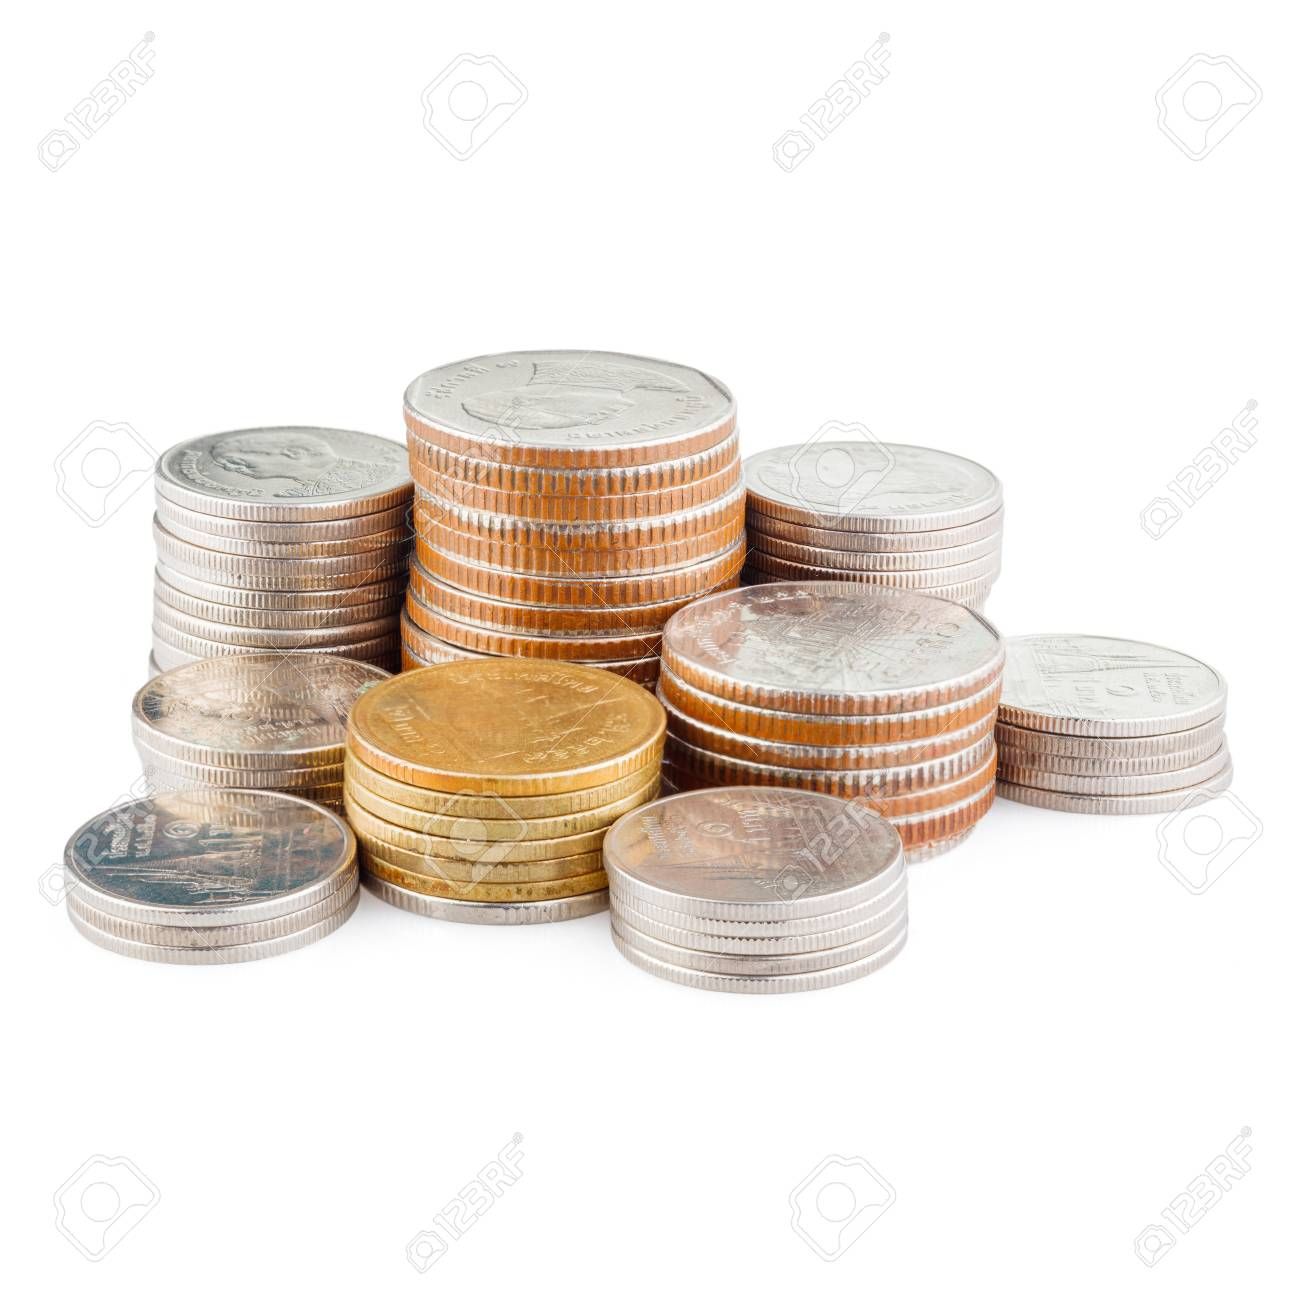 coin stack isolated on white with clipping path - 105338131